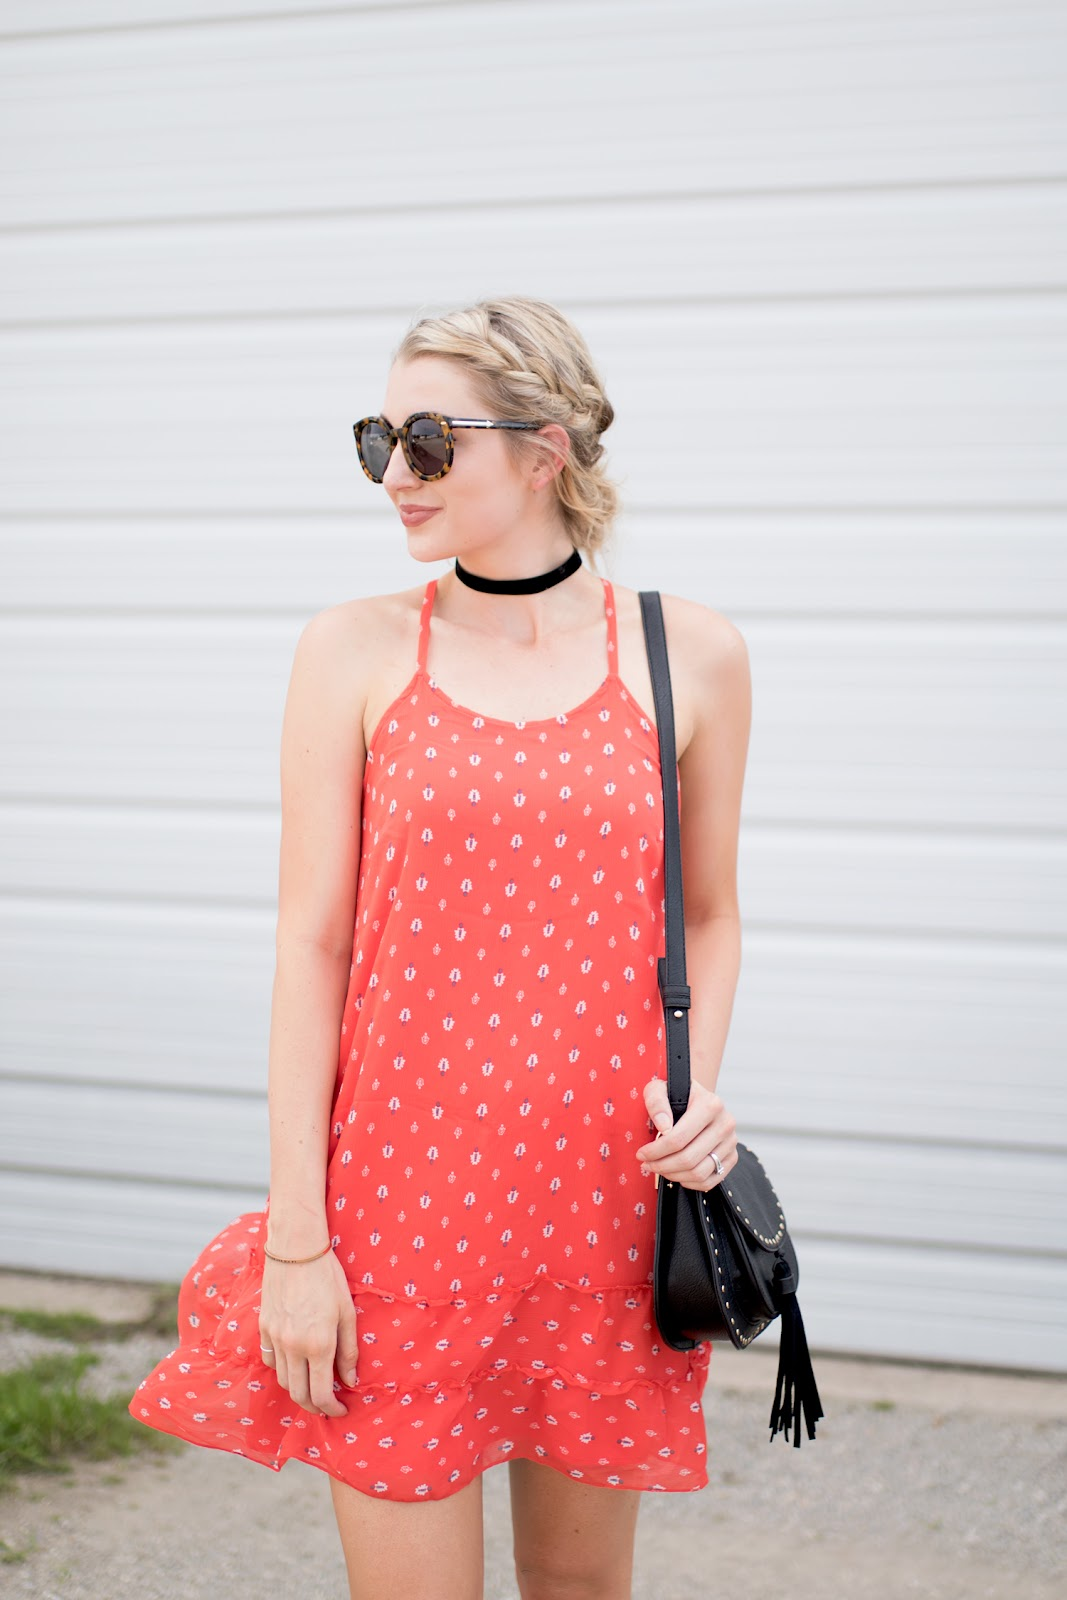 Red print dress with black accessories